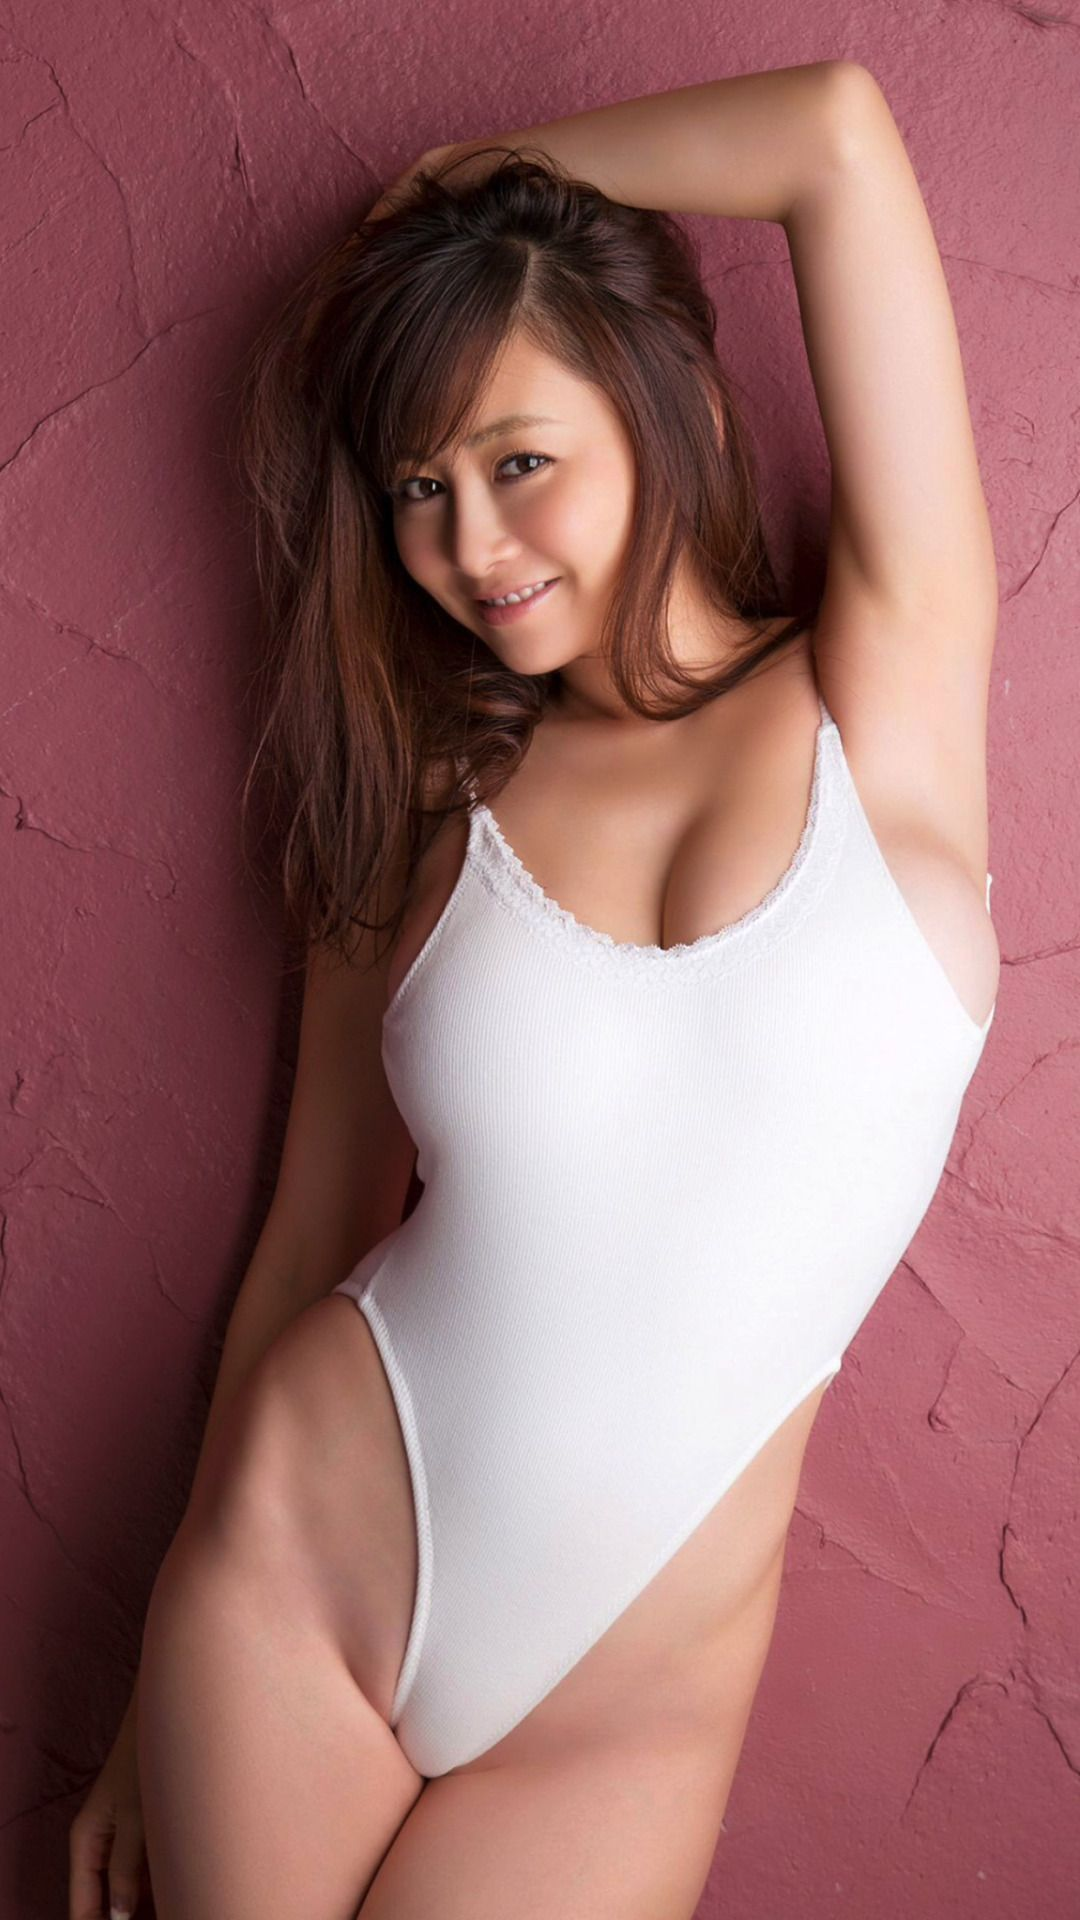 Anri Sugihara Images X Pinterest She S Swimsuits